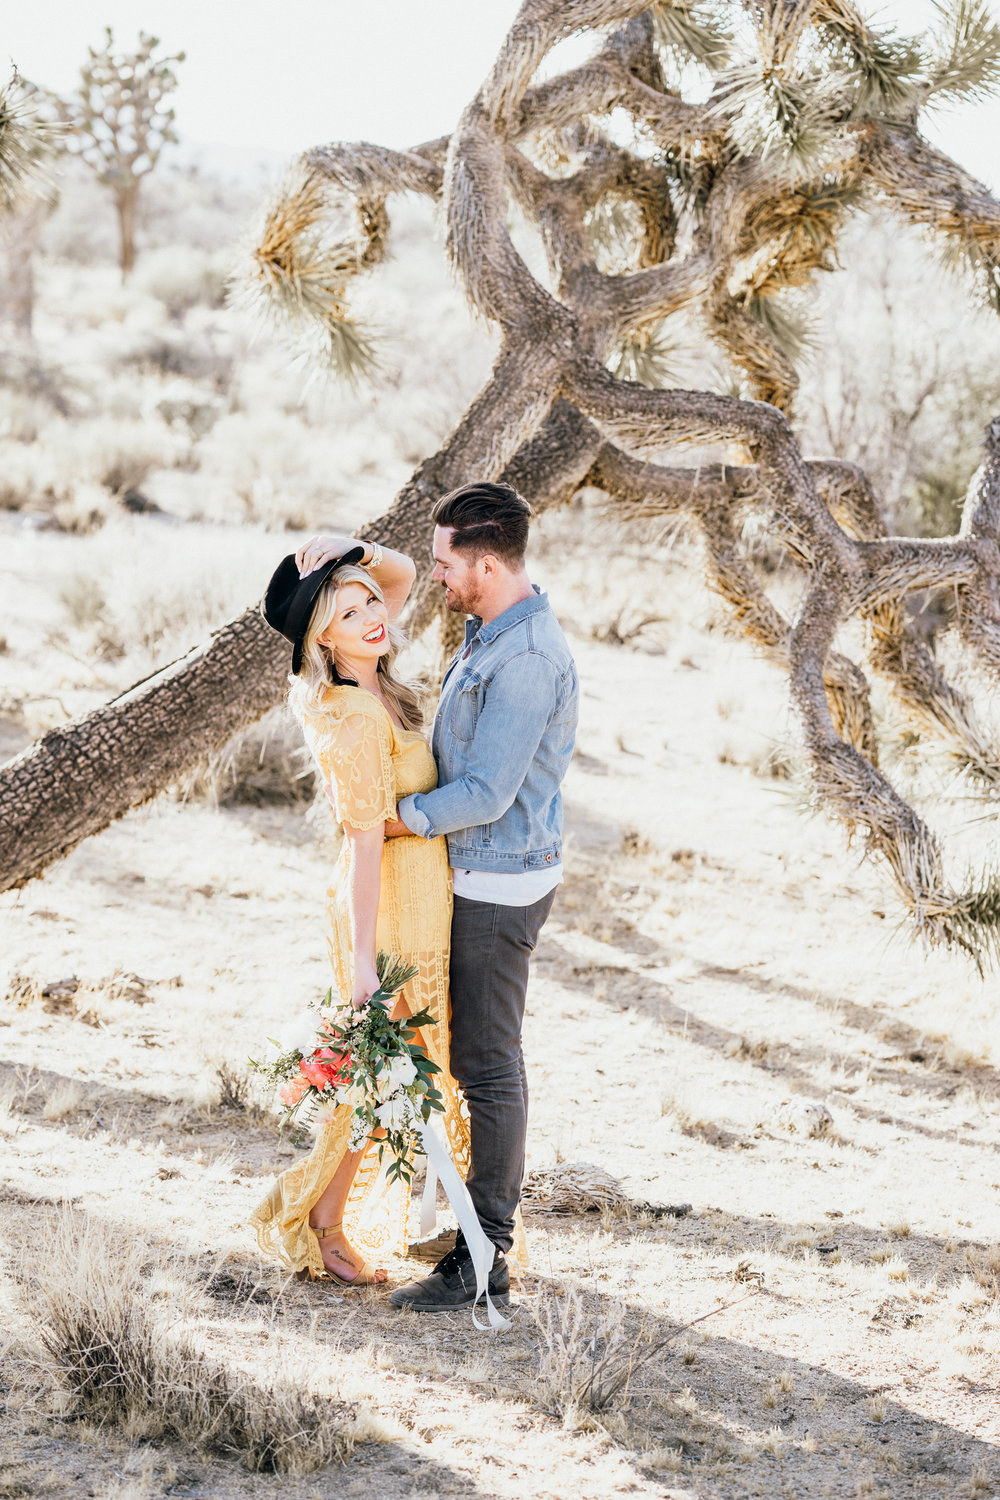 joshue-tree-engagement-session-alana_0053.JPG